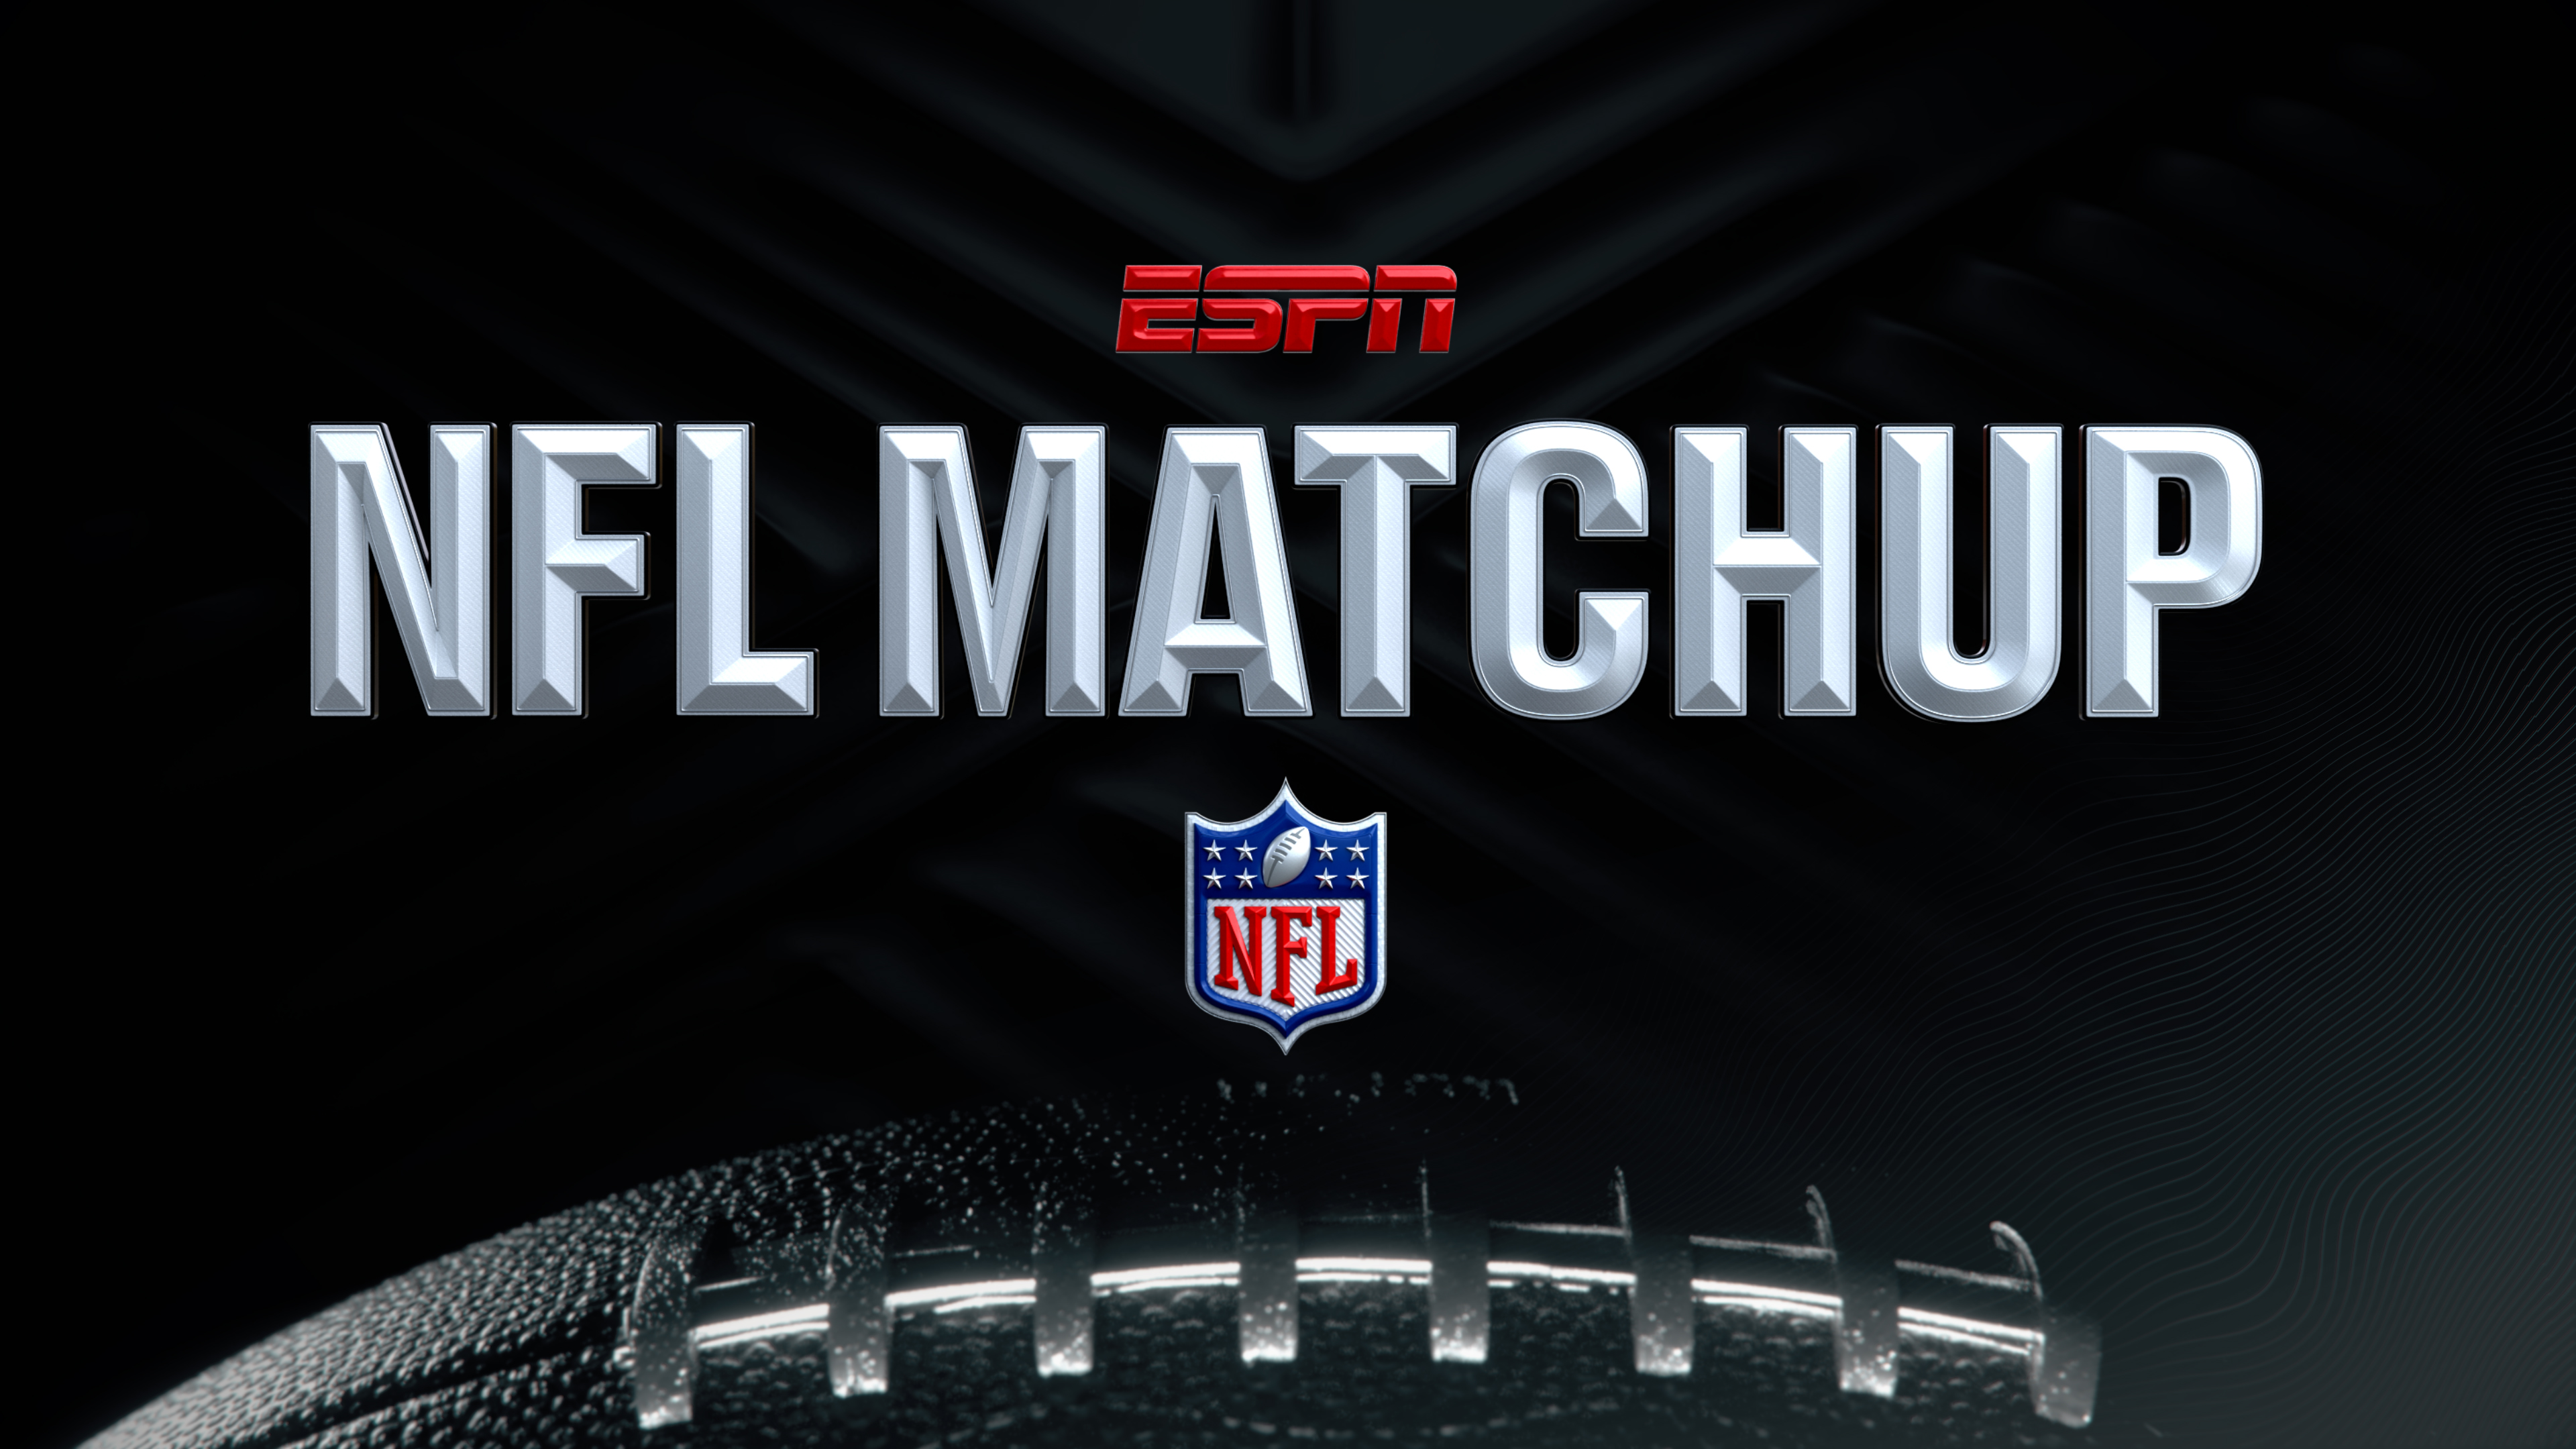 NFL Matchup: Draft Special (Episode 2)